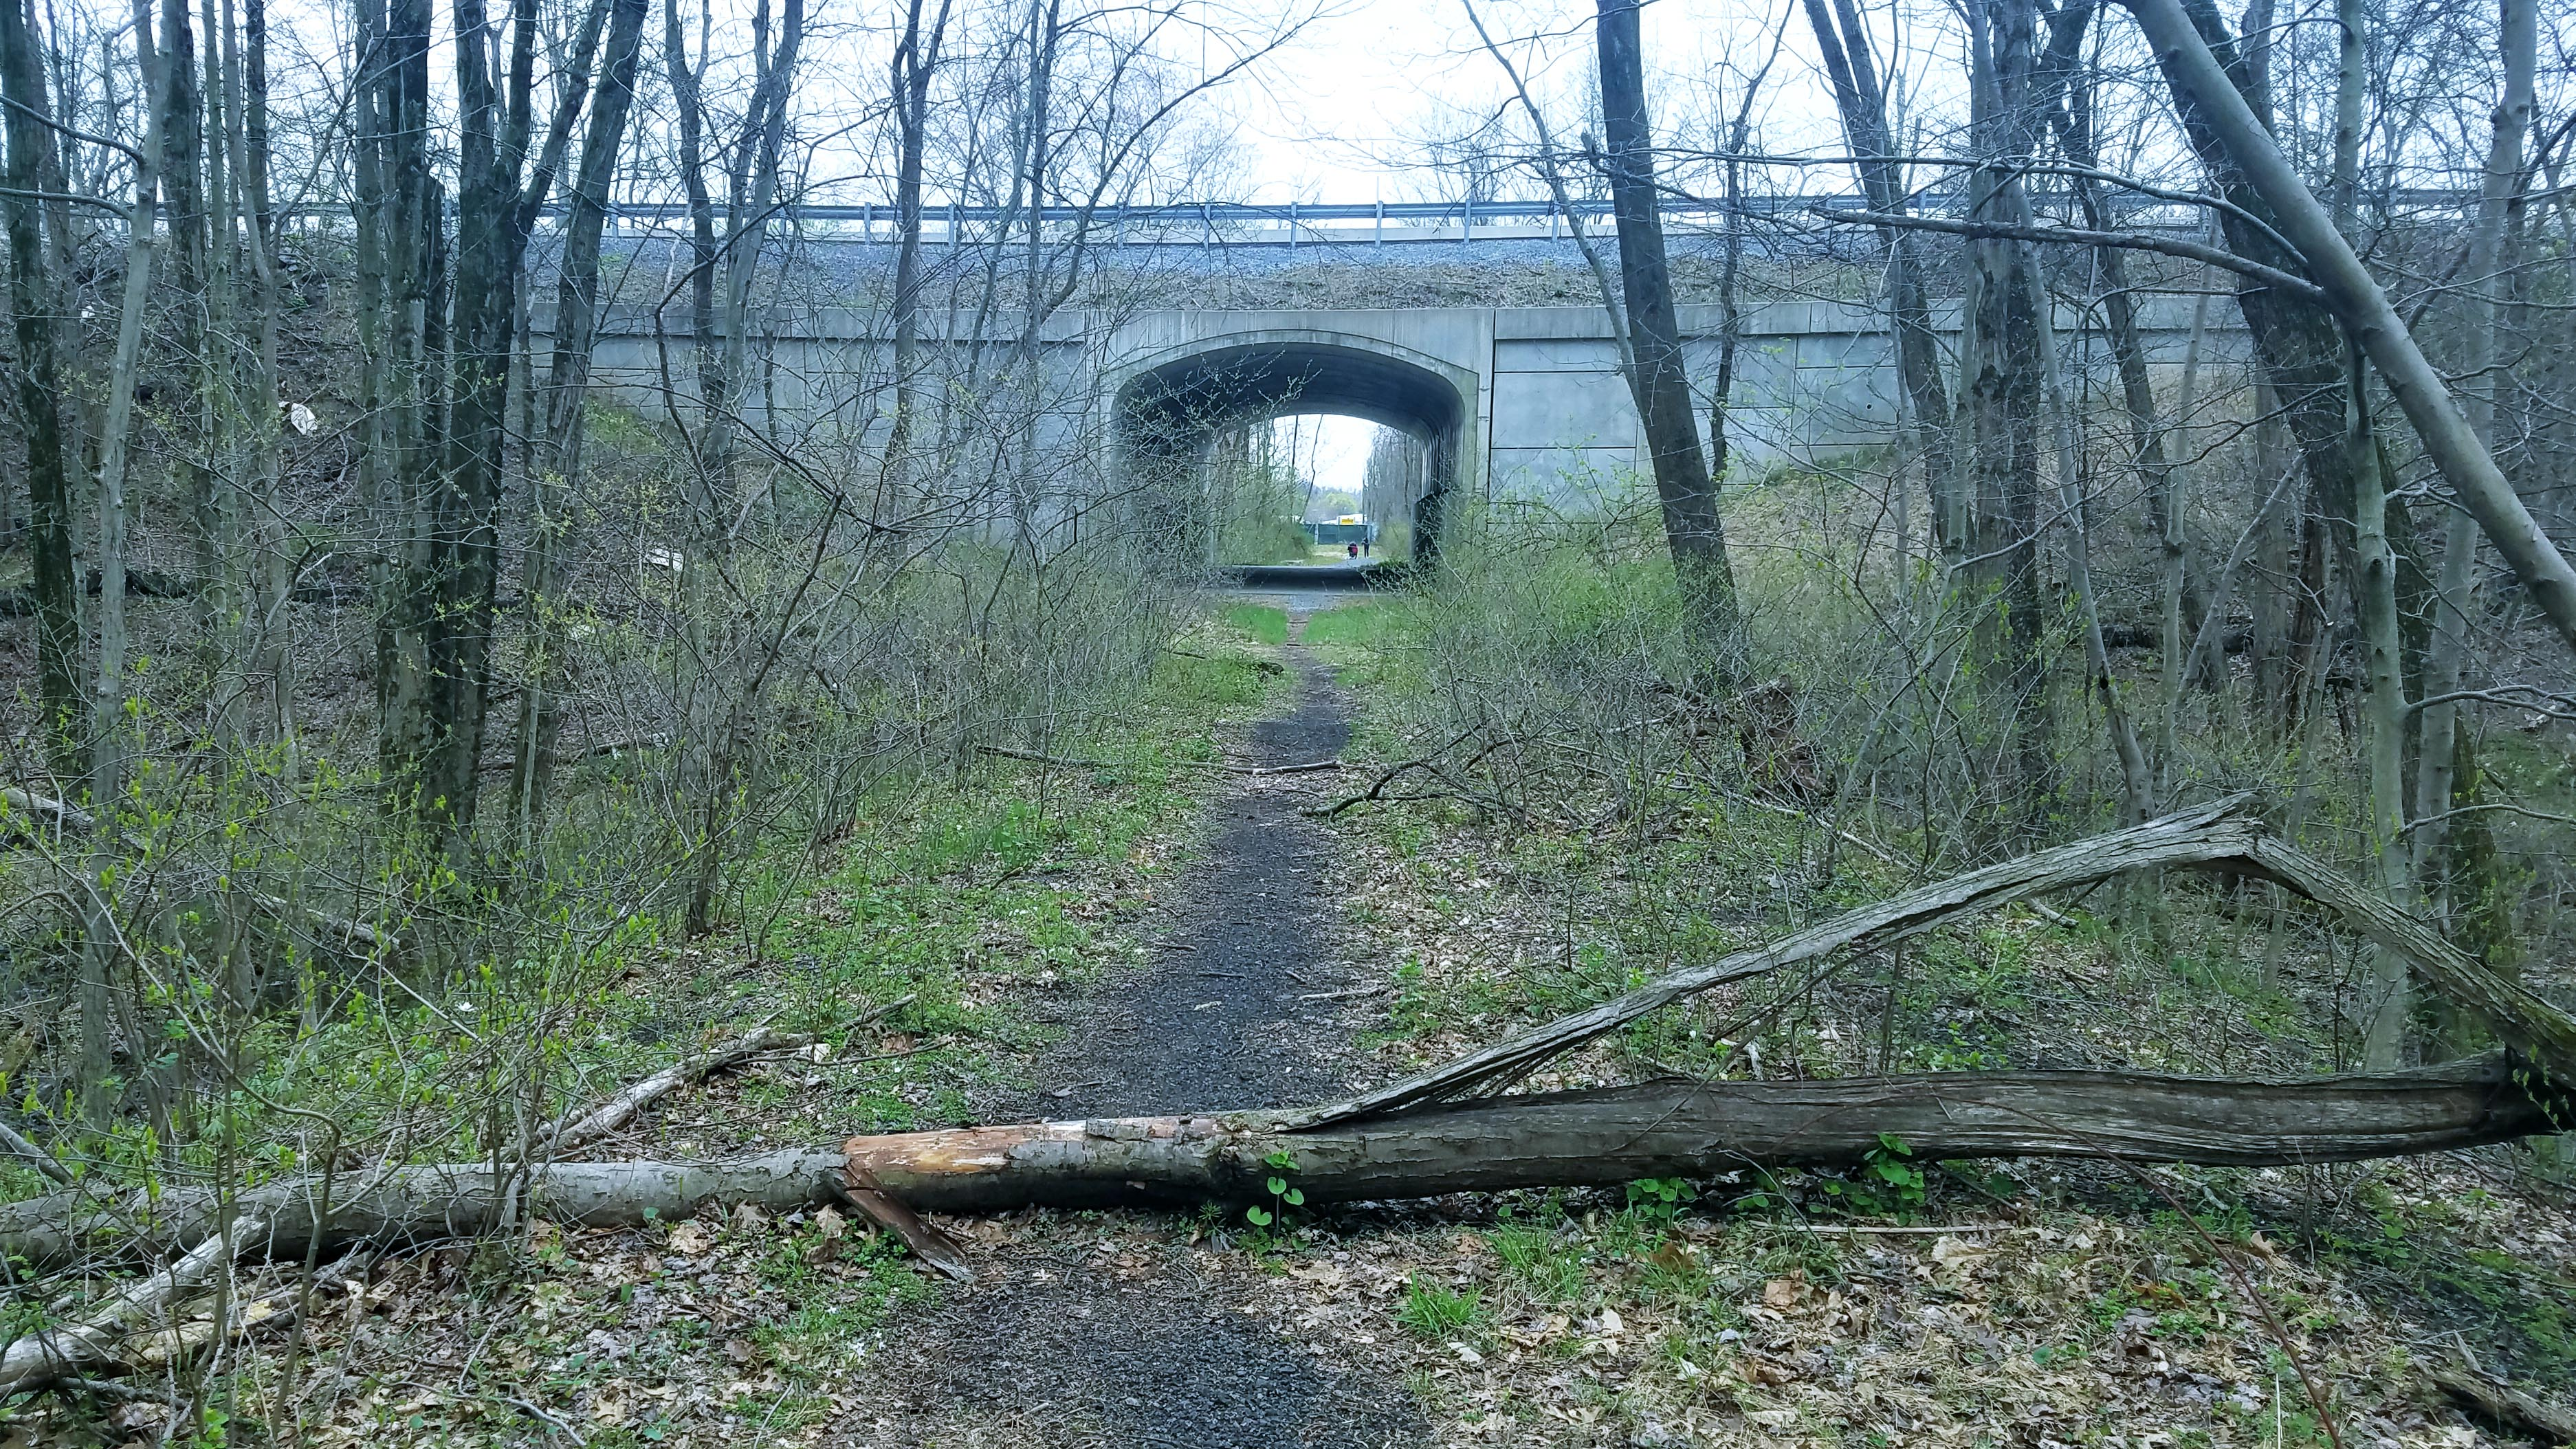 Rails to Trails moves forward with planned Jonestown-Lickdale expansion